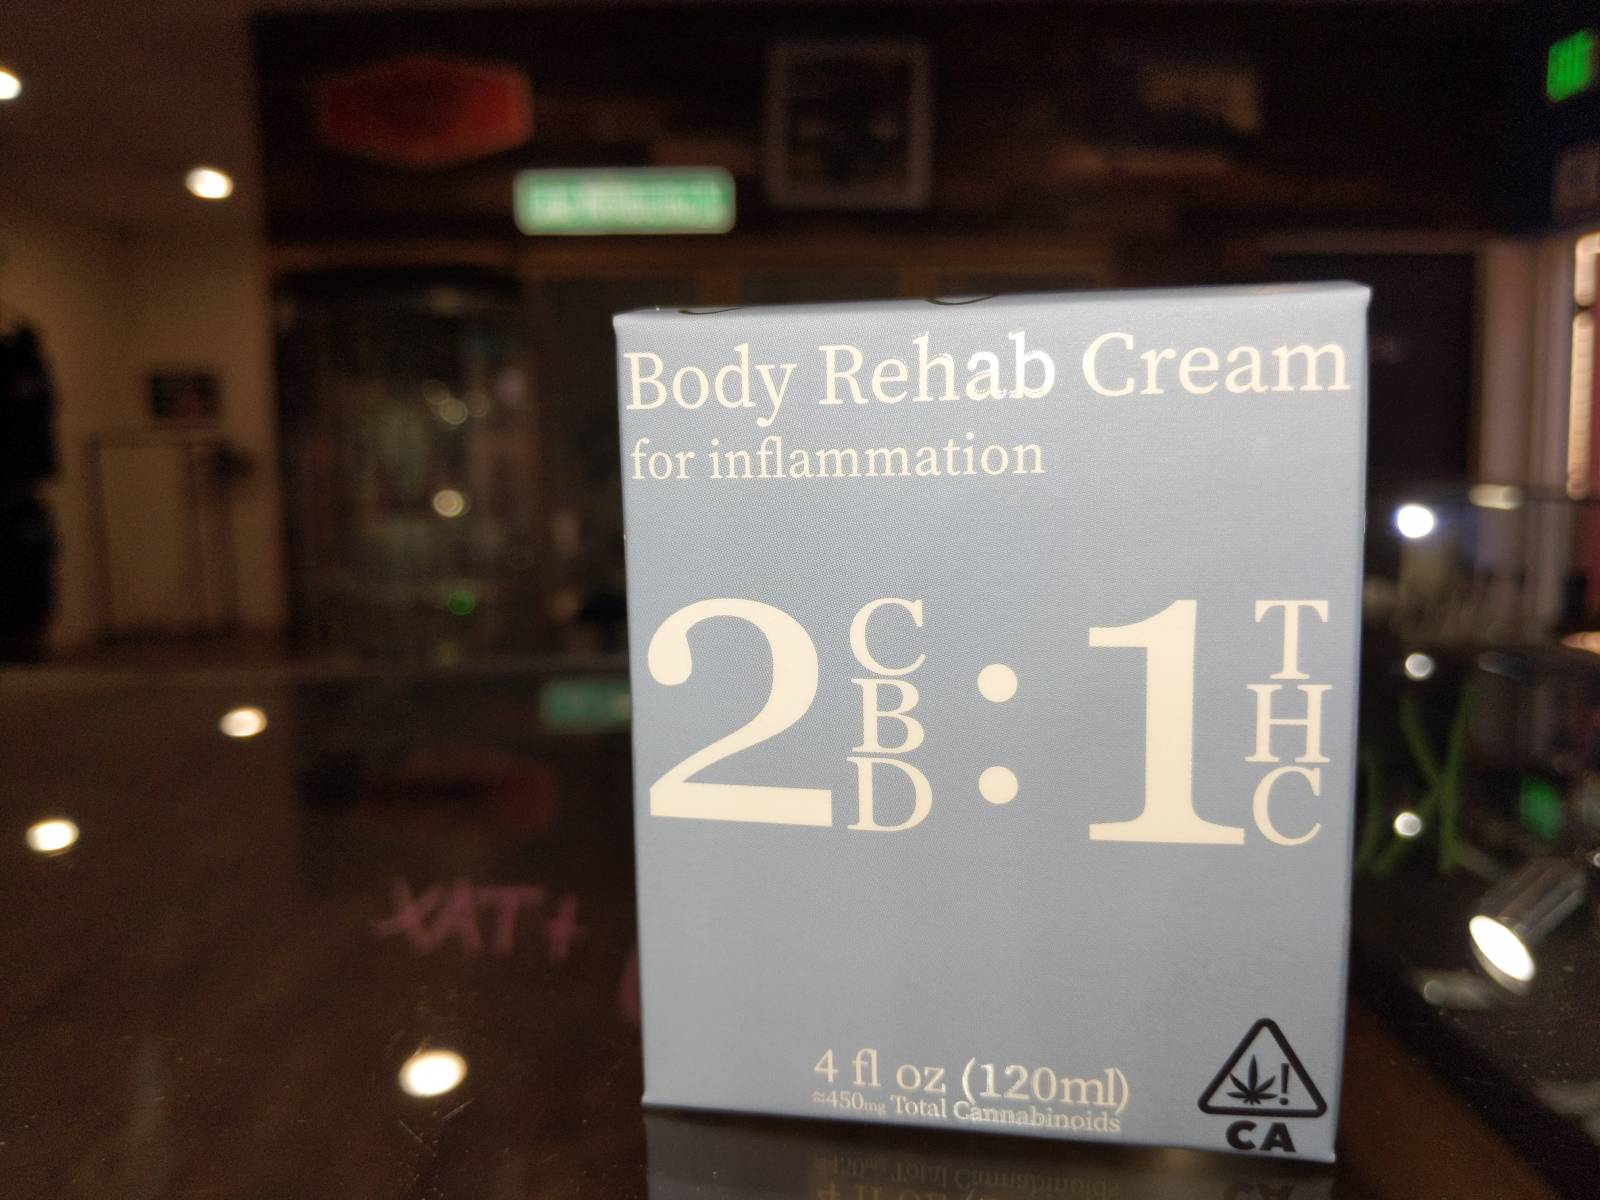 High Gorgeous 2:1 Rehab Body Cream for Inflammation